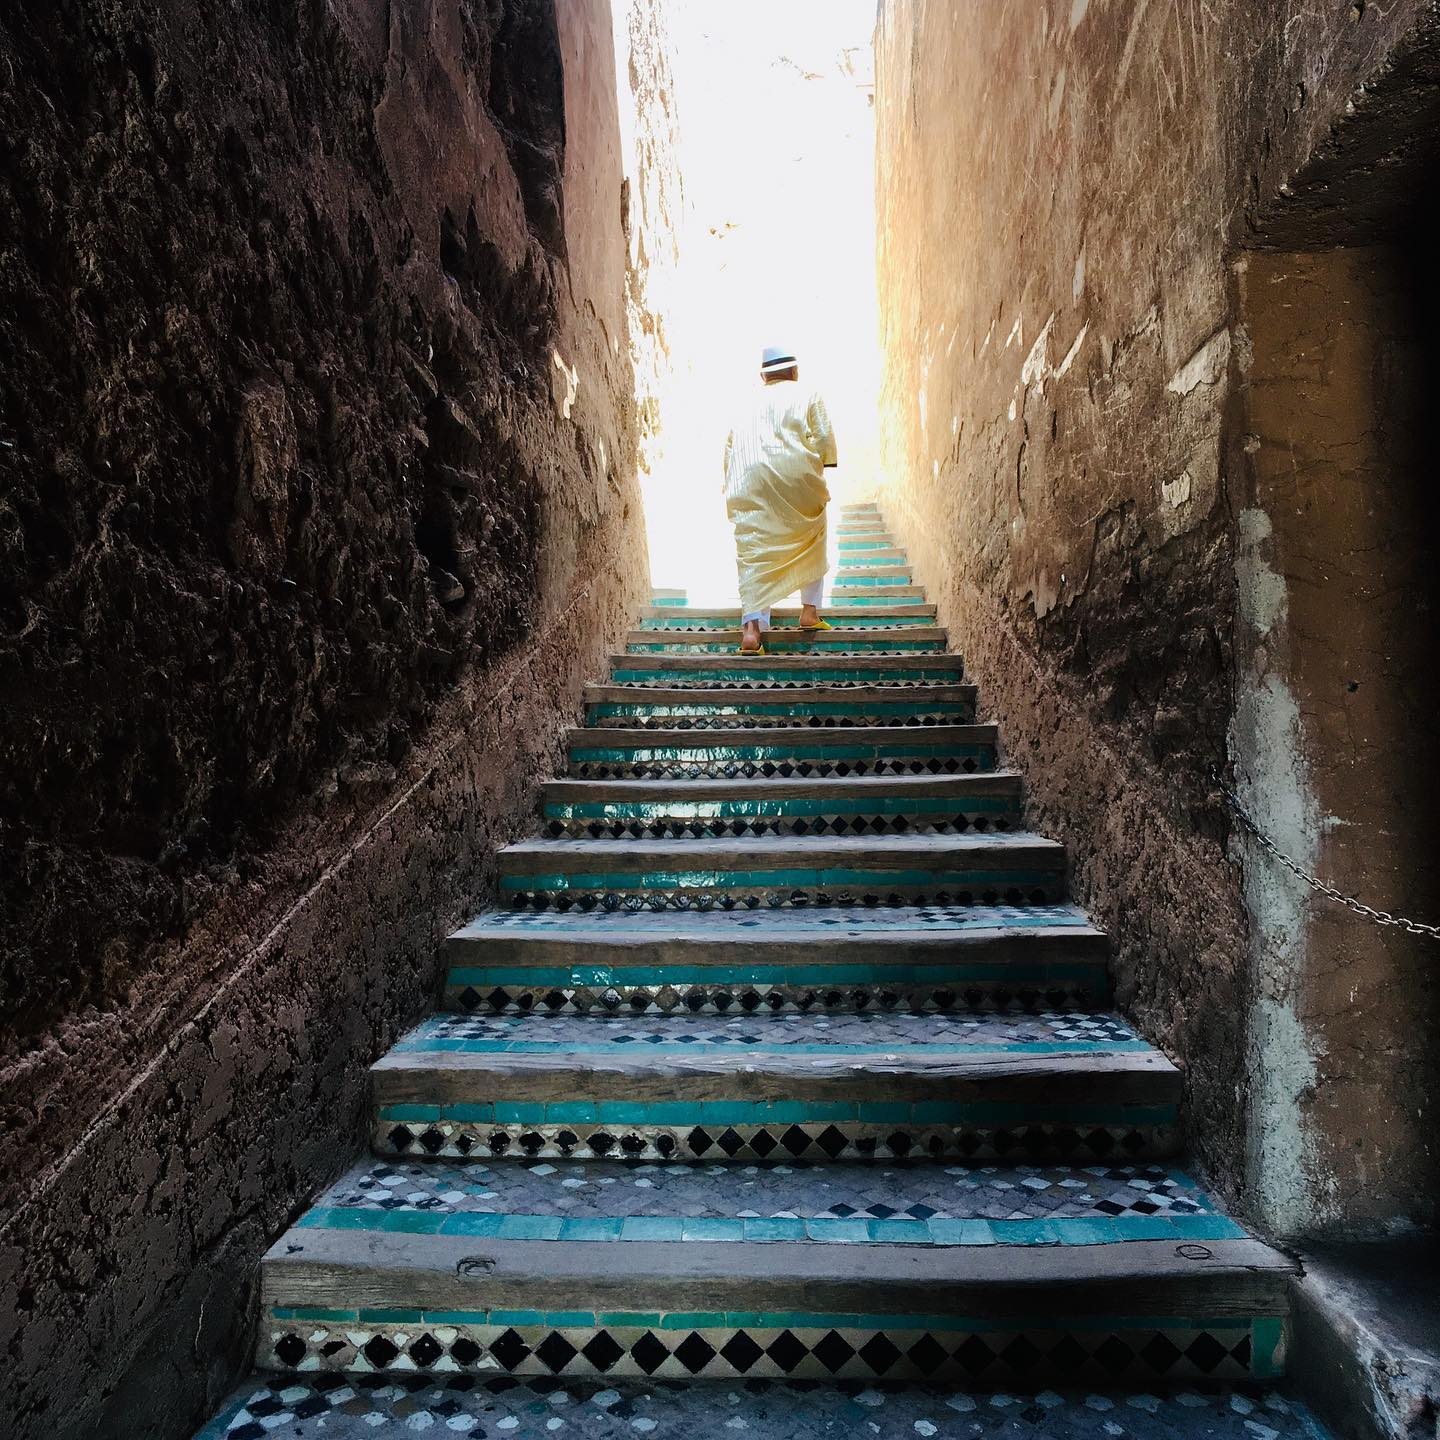 Staircase to God